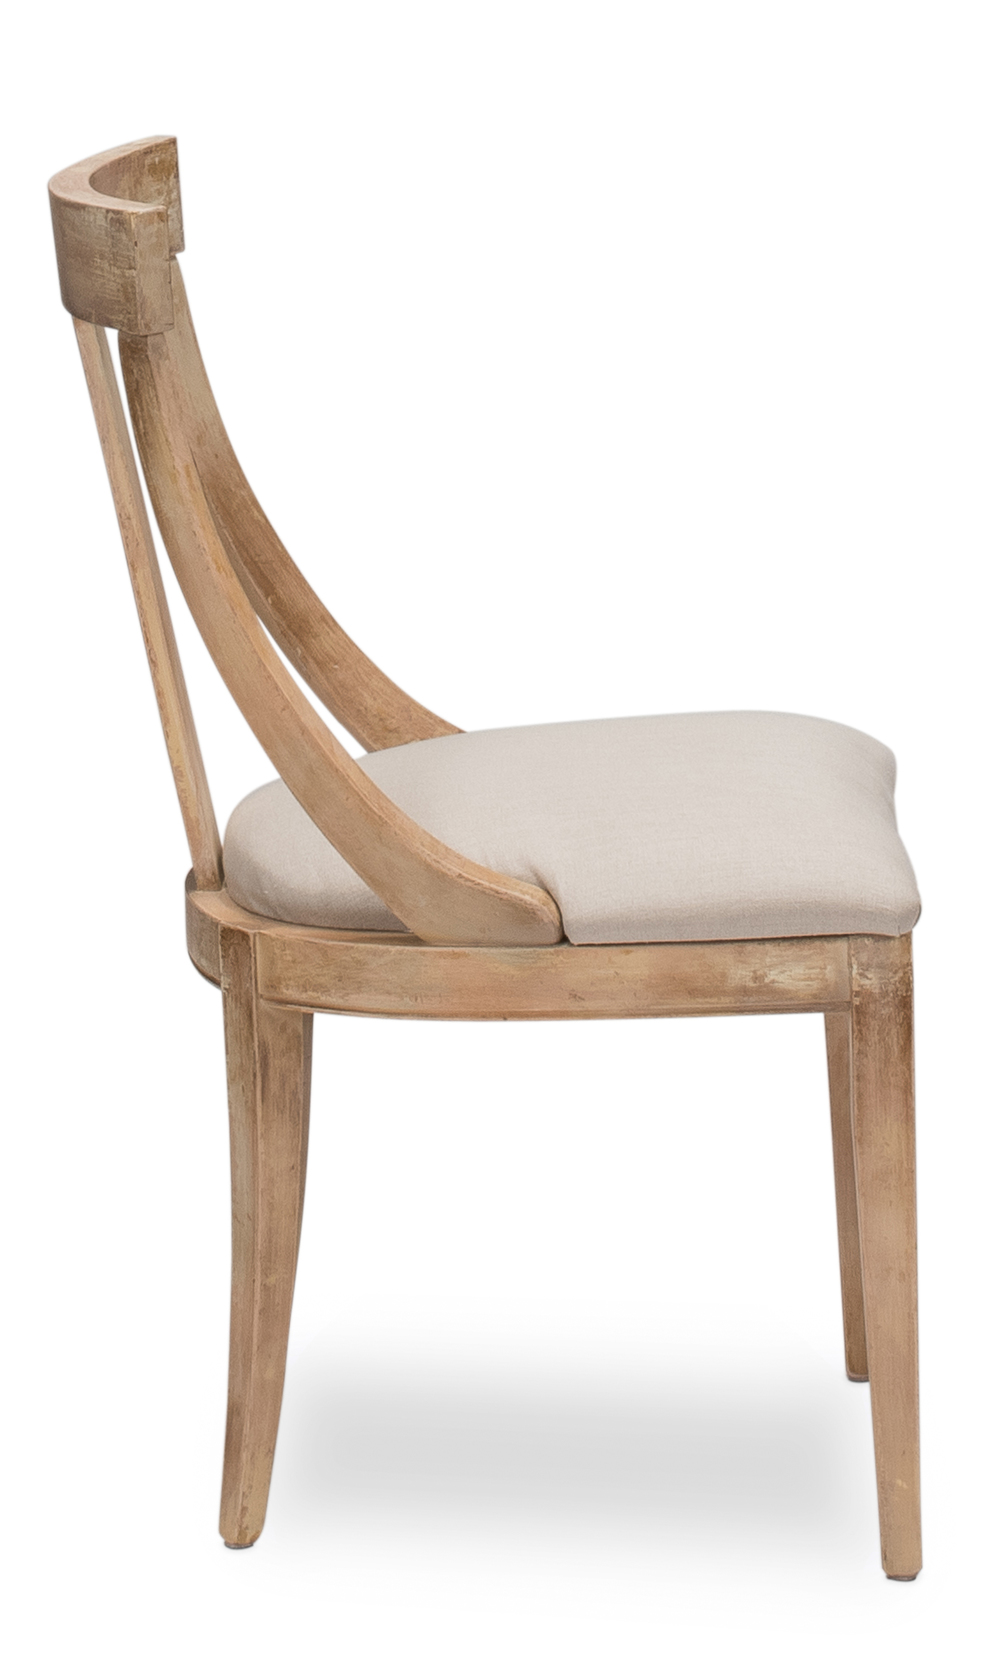 Sarreid - Deco Side Chair, Antique Oak, Linen Flax